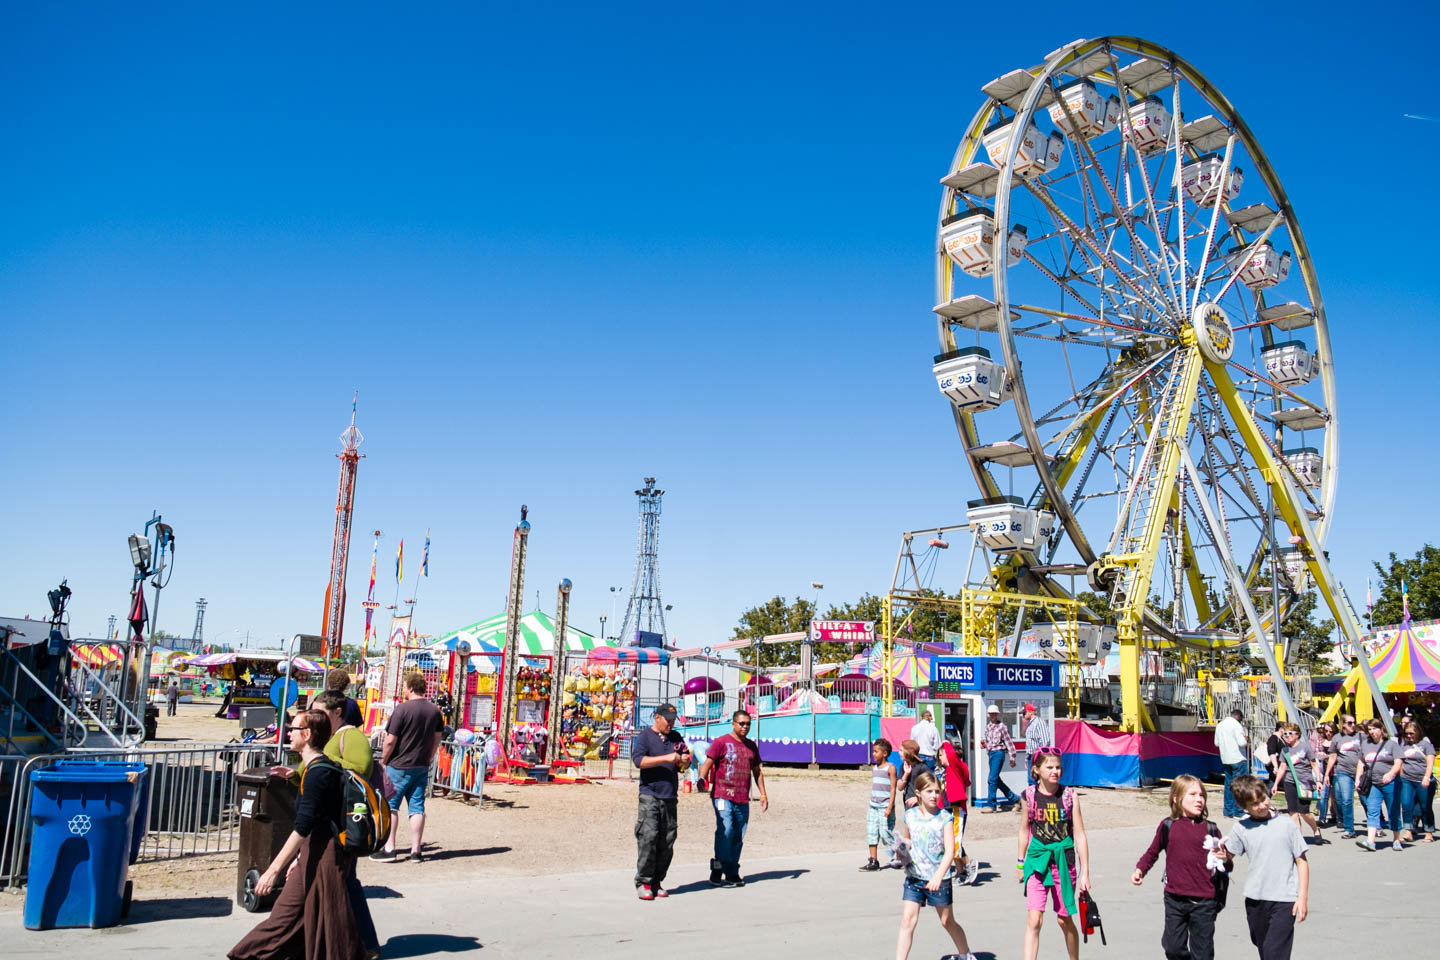 Ferris Wheel and rides at the Utah State Fair